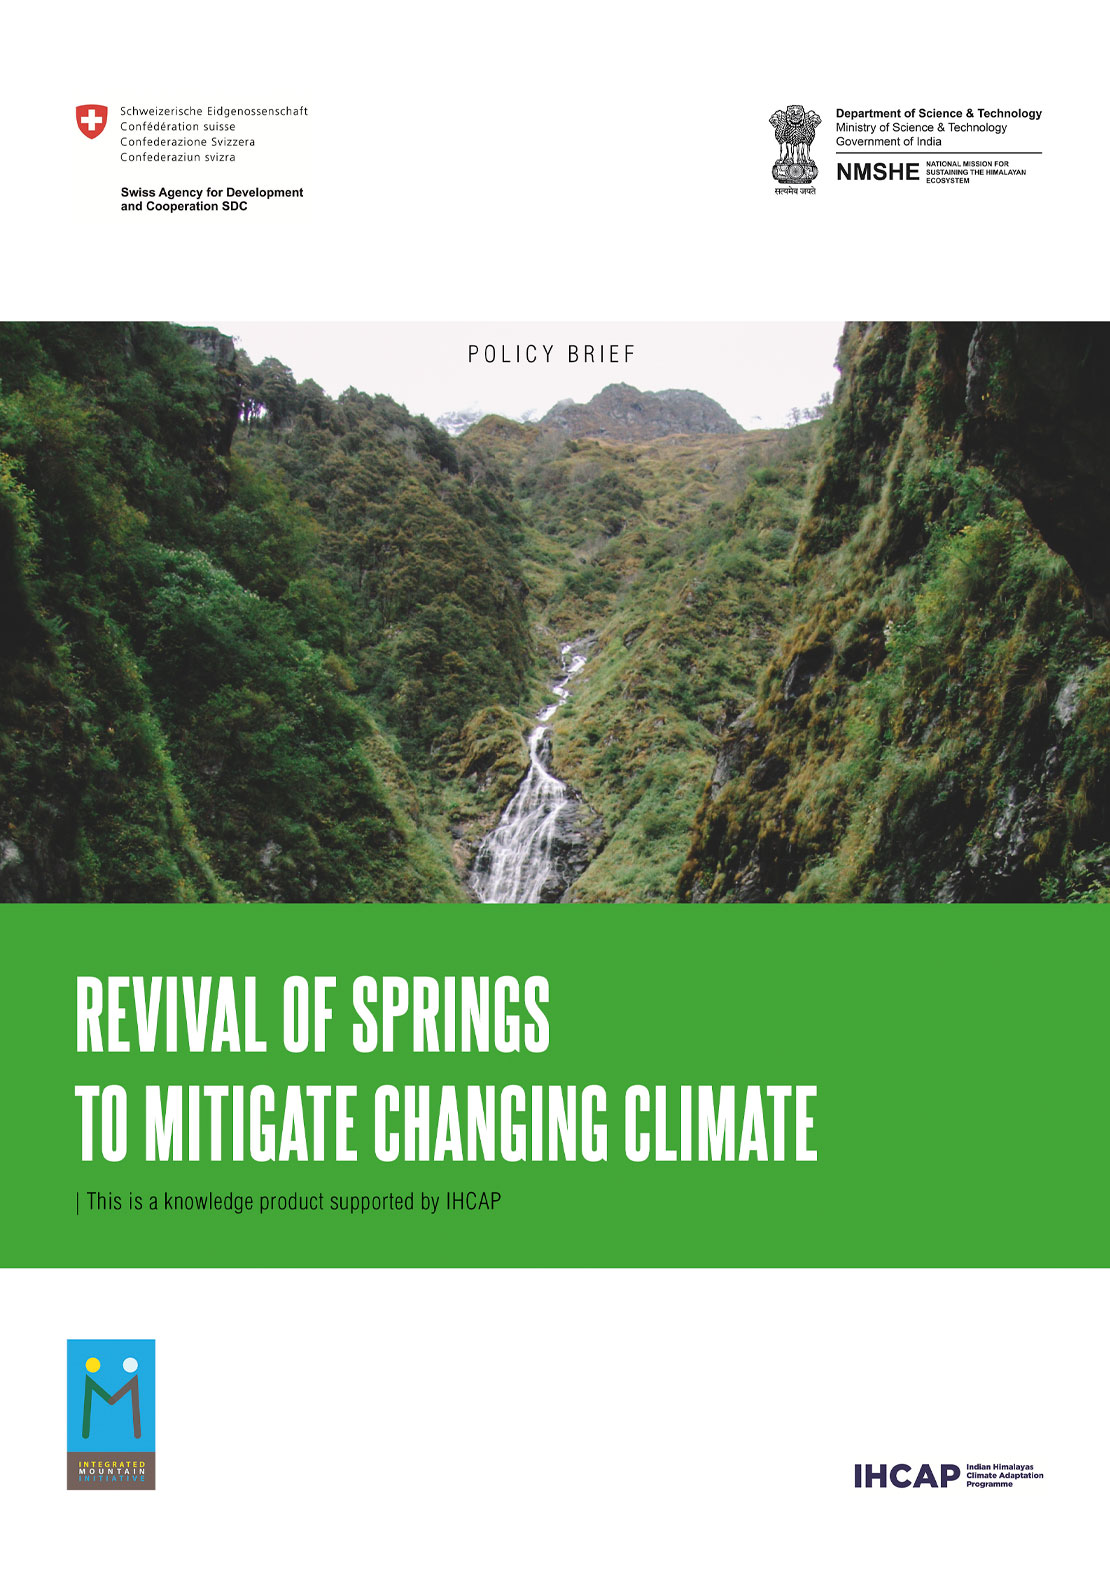 Revival of Springs IMI Policy Brief